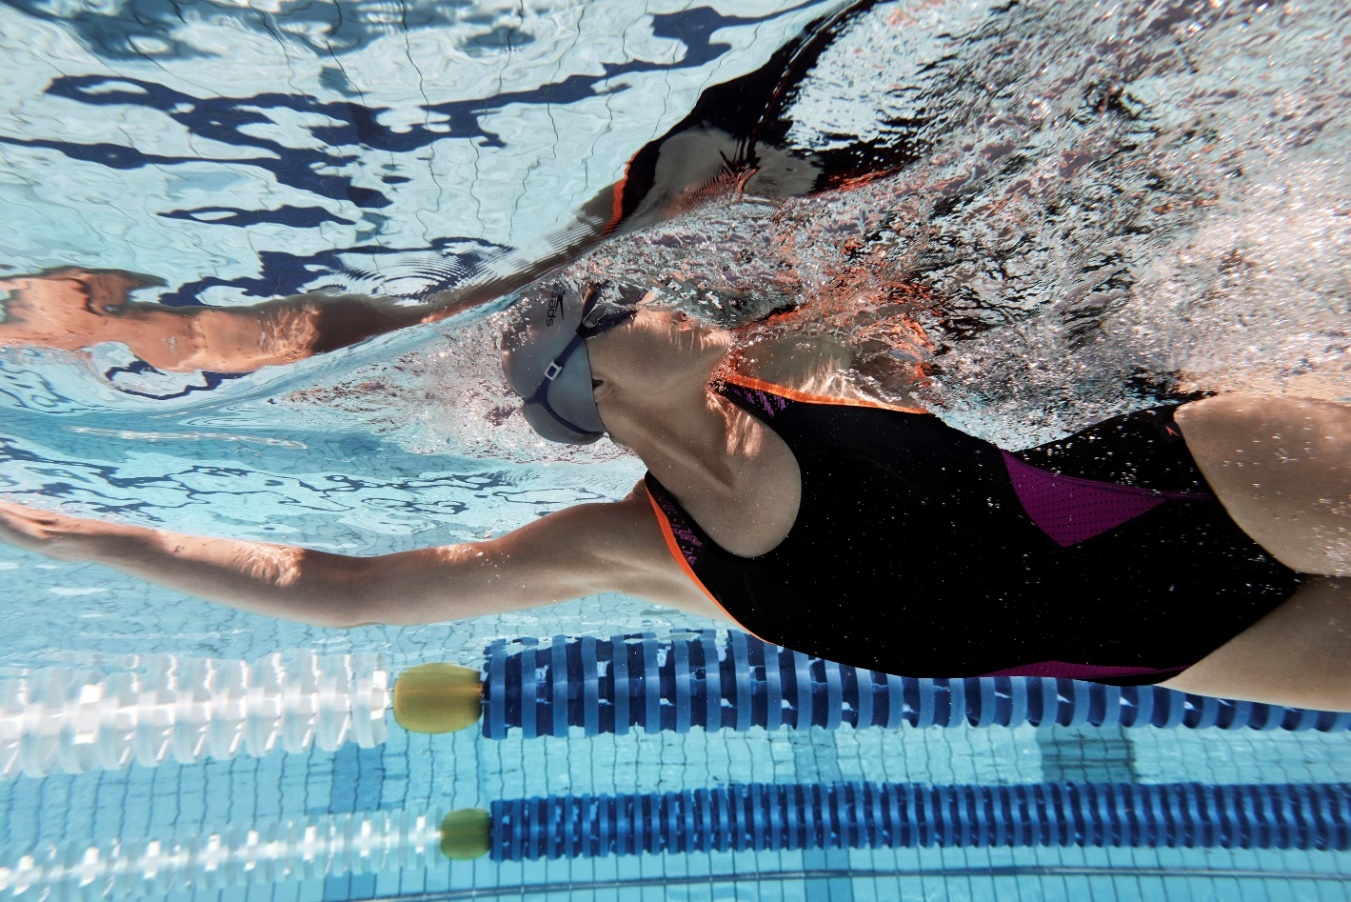 A swimmer in action